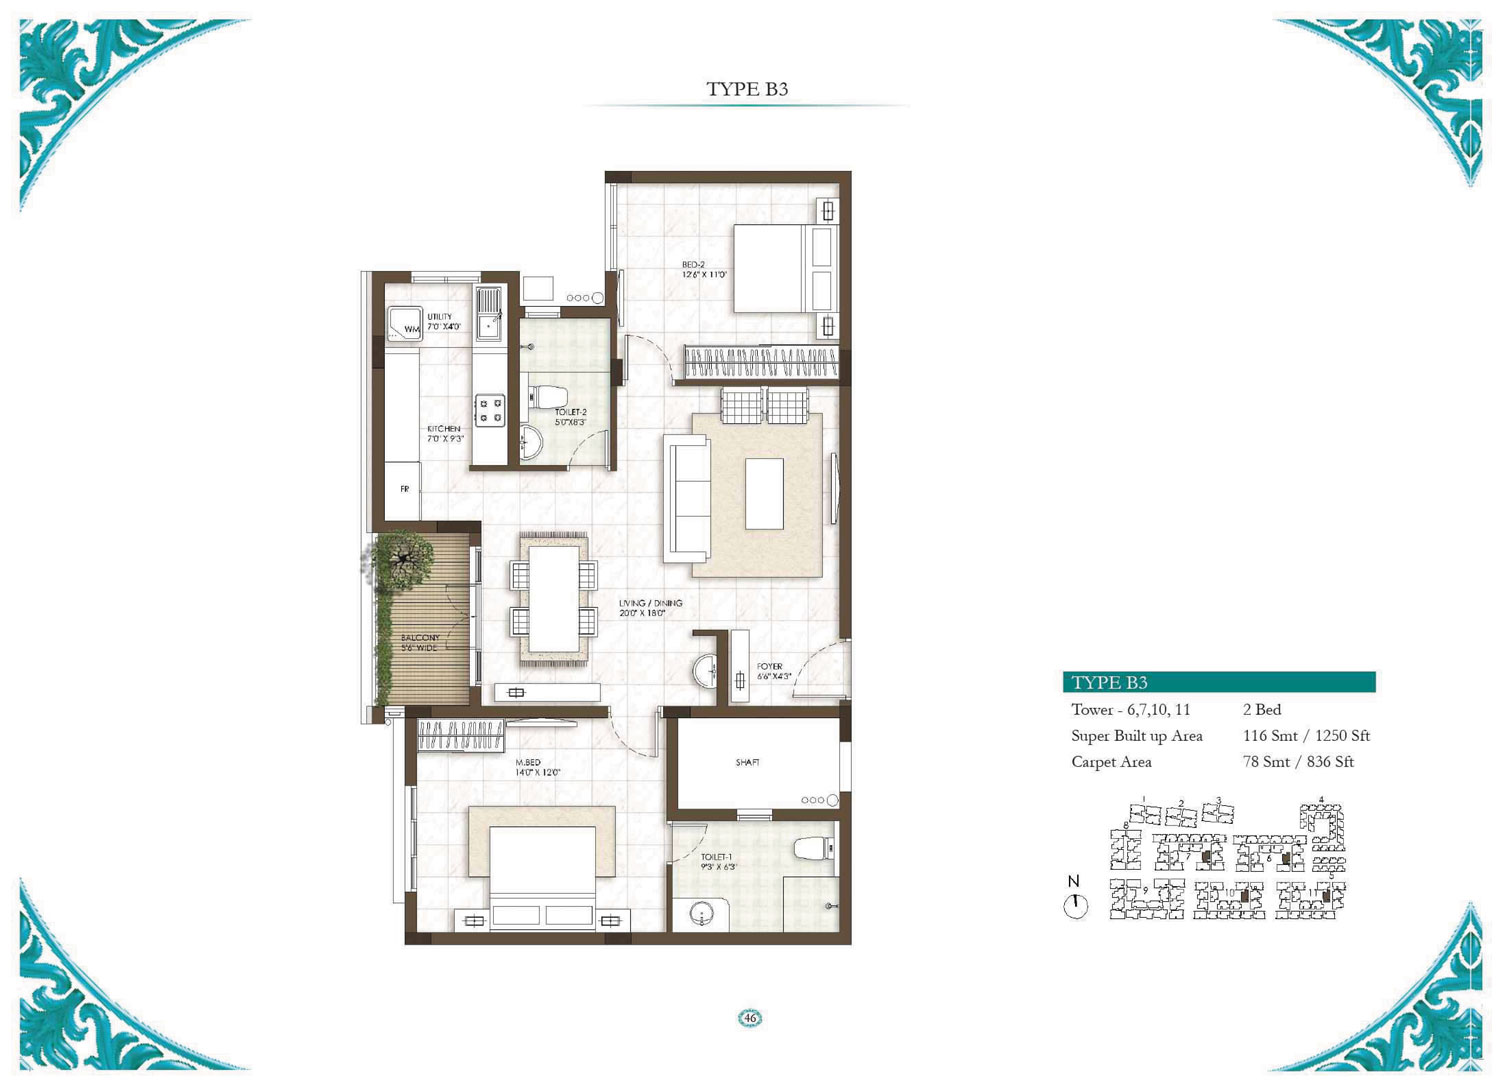 Type B3 - 1 Bed - 1250 Sq Ft